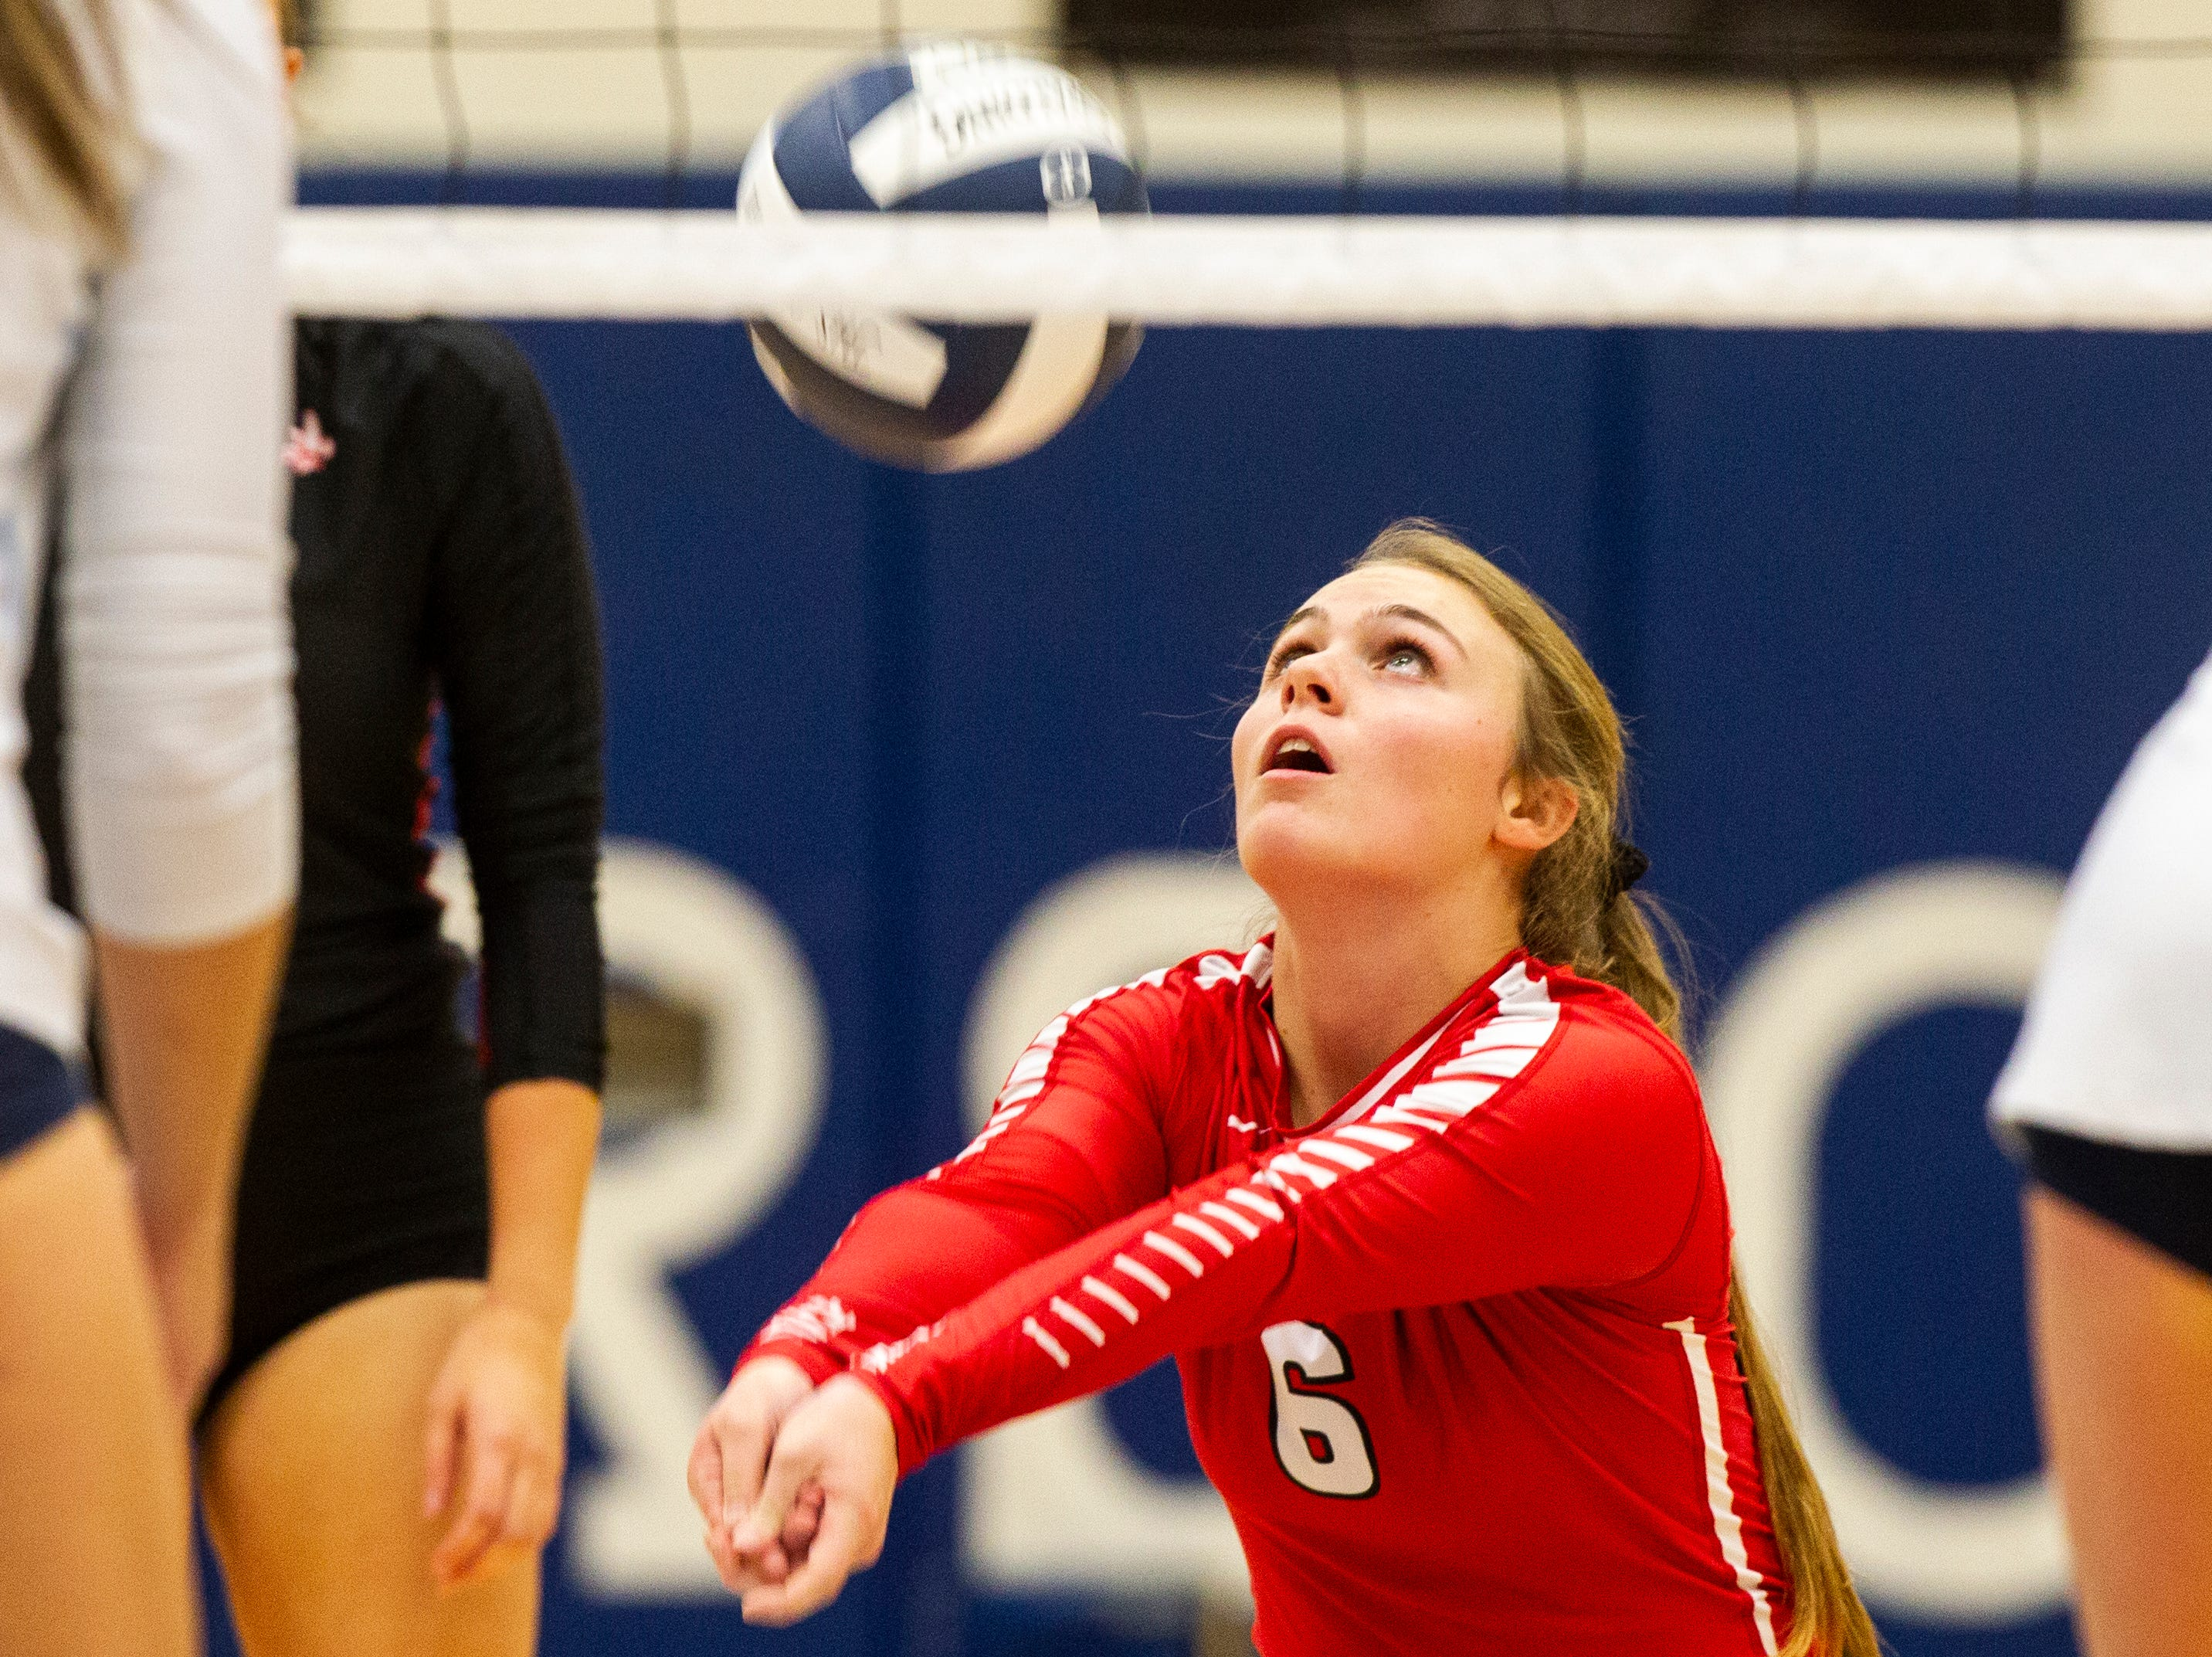 Iowa City High's Brooke Bormann hits a ball during a Class 5A volleyball regional final game on Monday, Oct. 29, 2018, at Jefferson High School in Cedar Rapids.